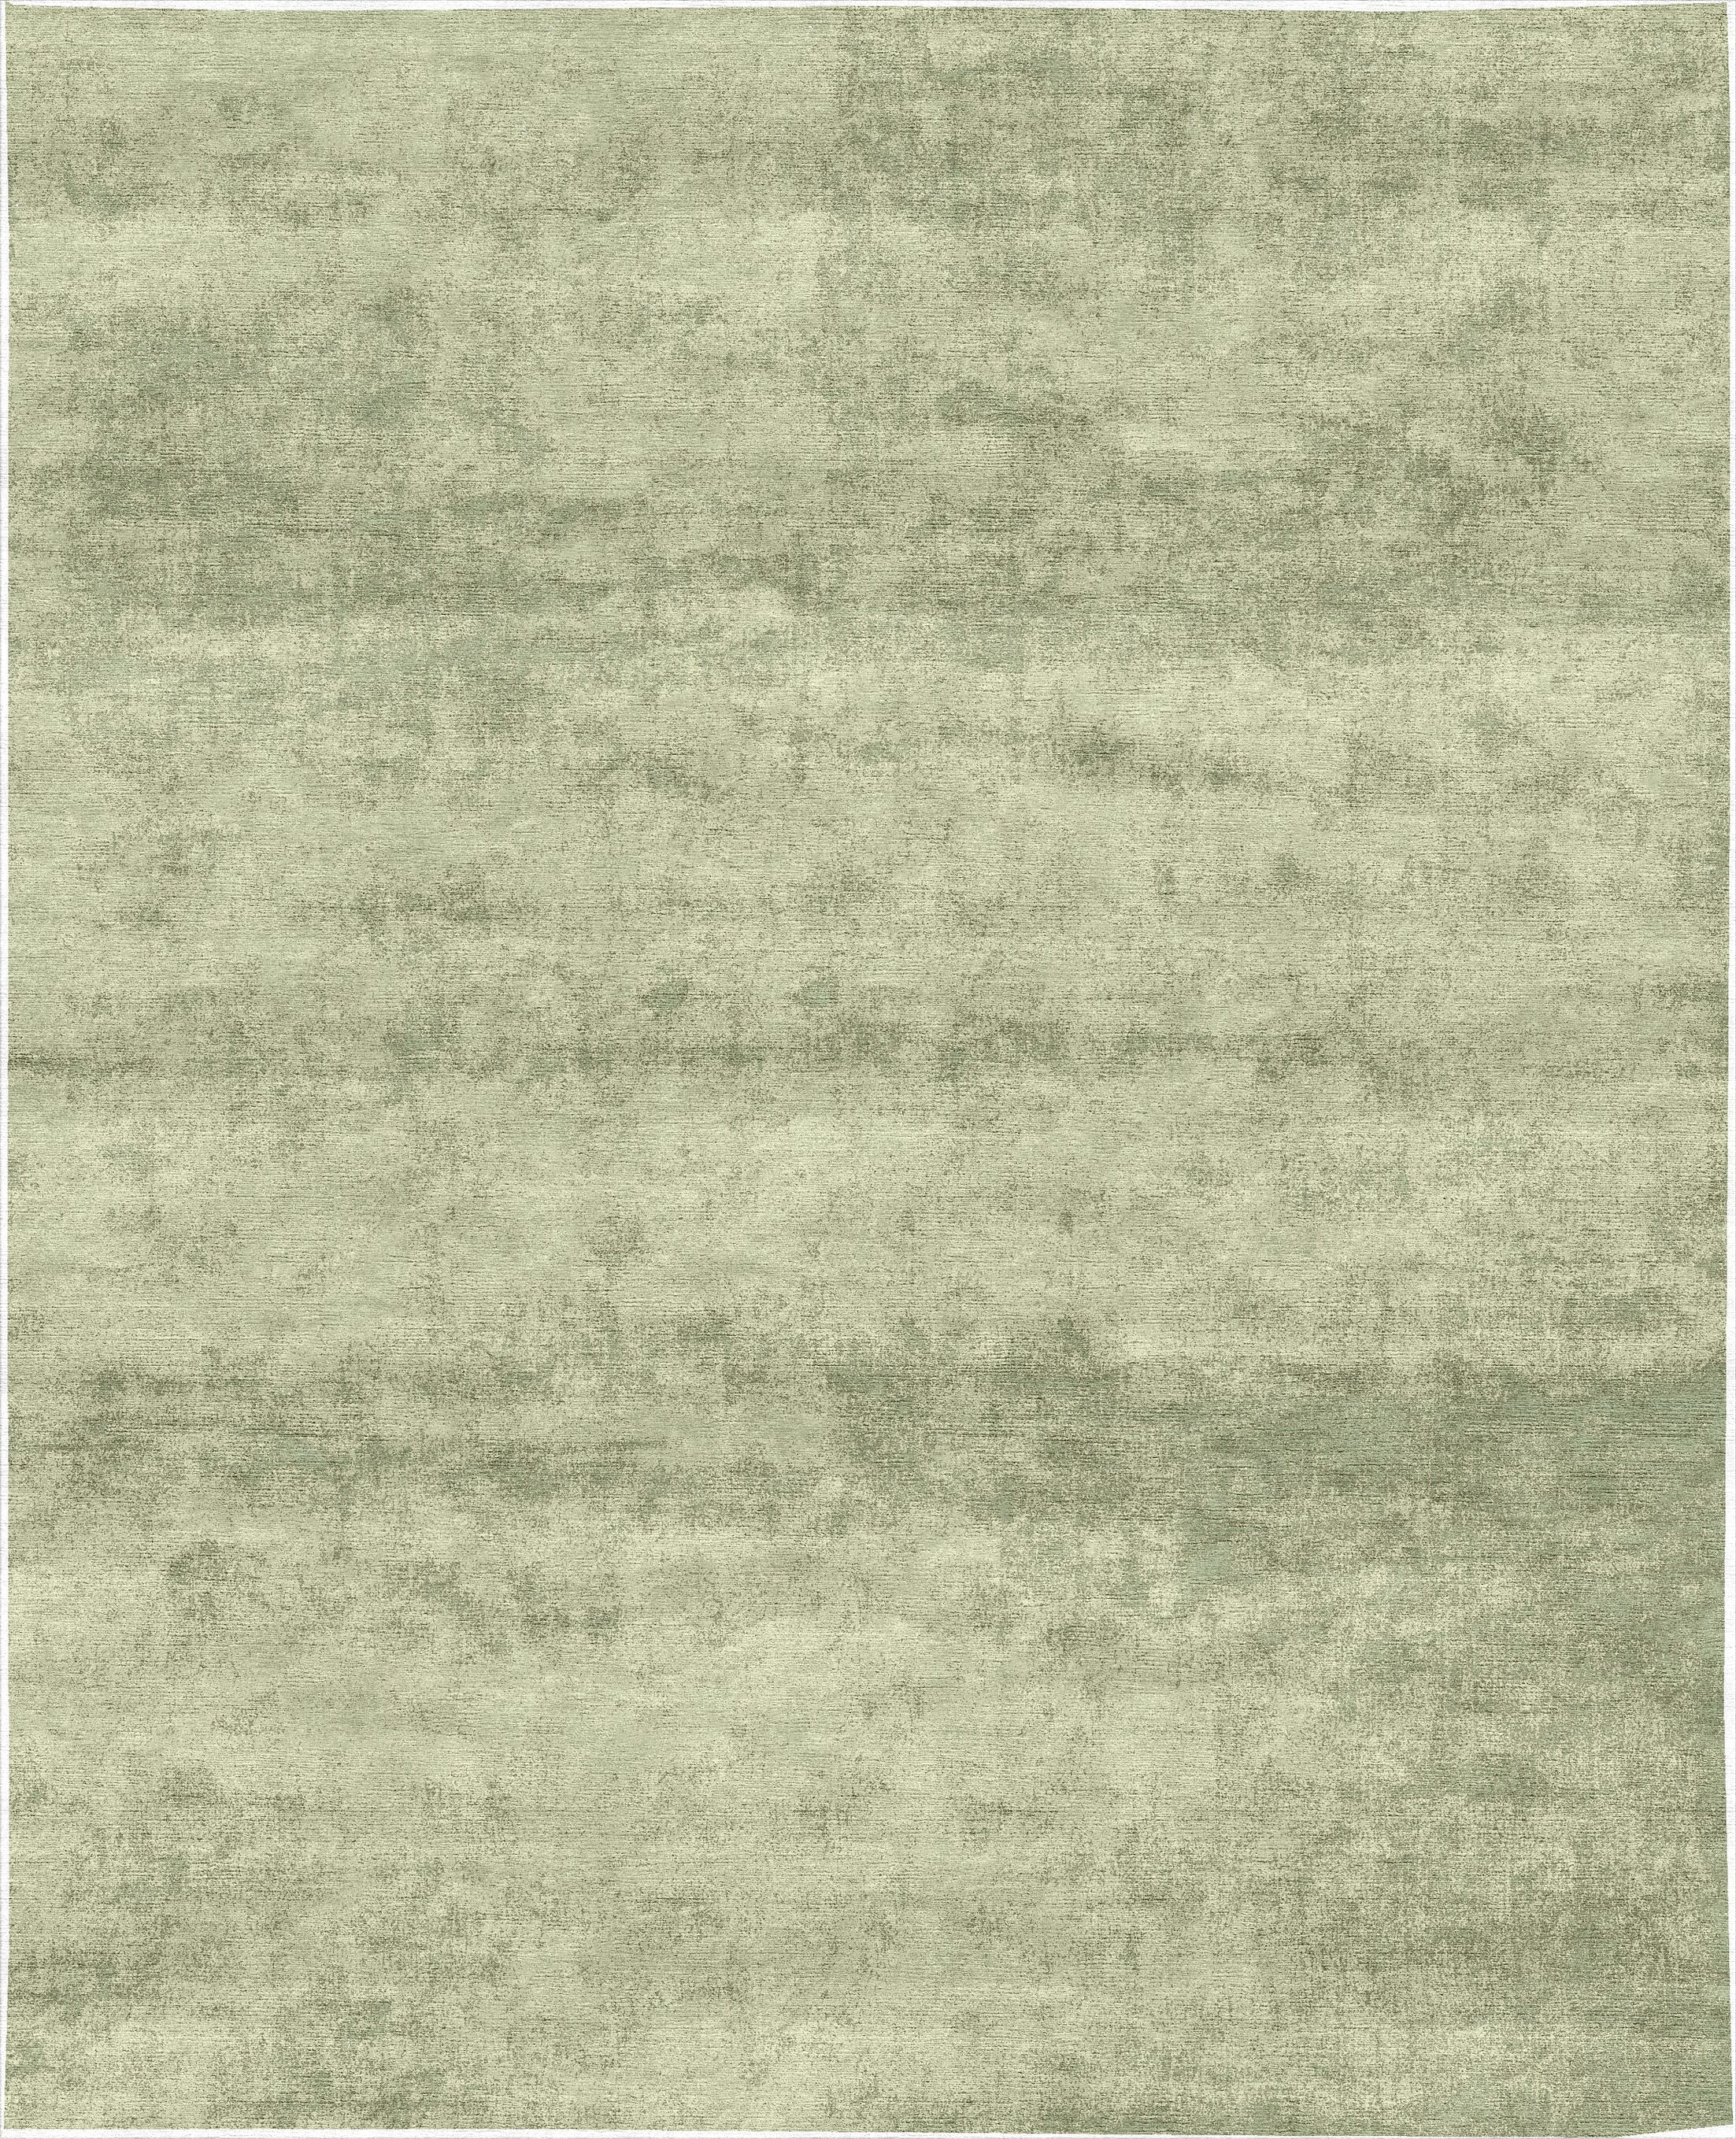 One-of-a-Kind Hand-Knotted Light Green Indoor Area Rug